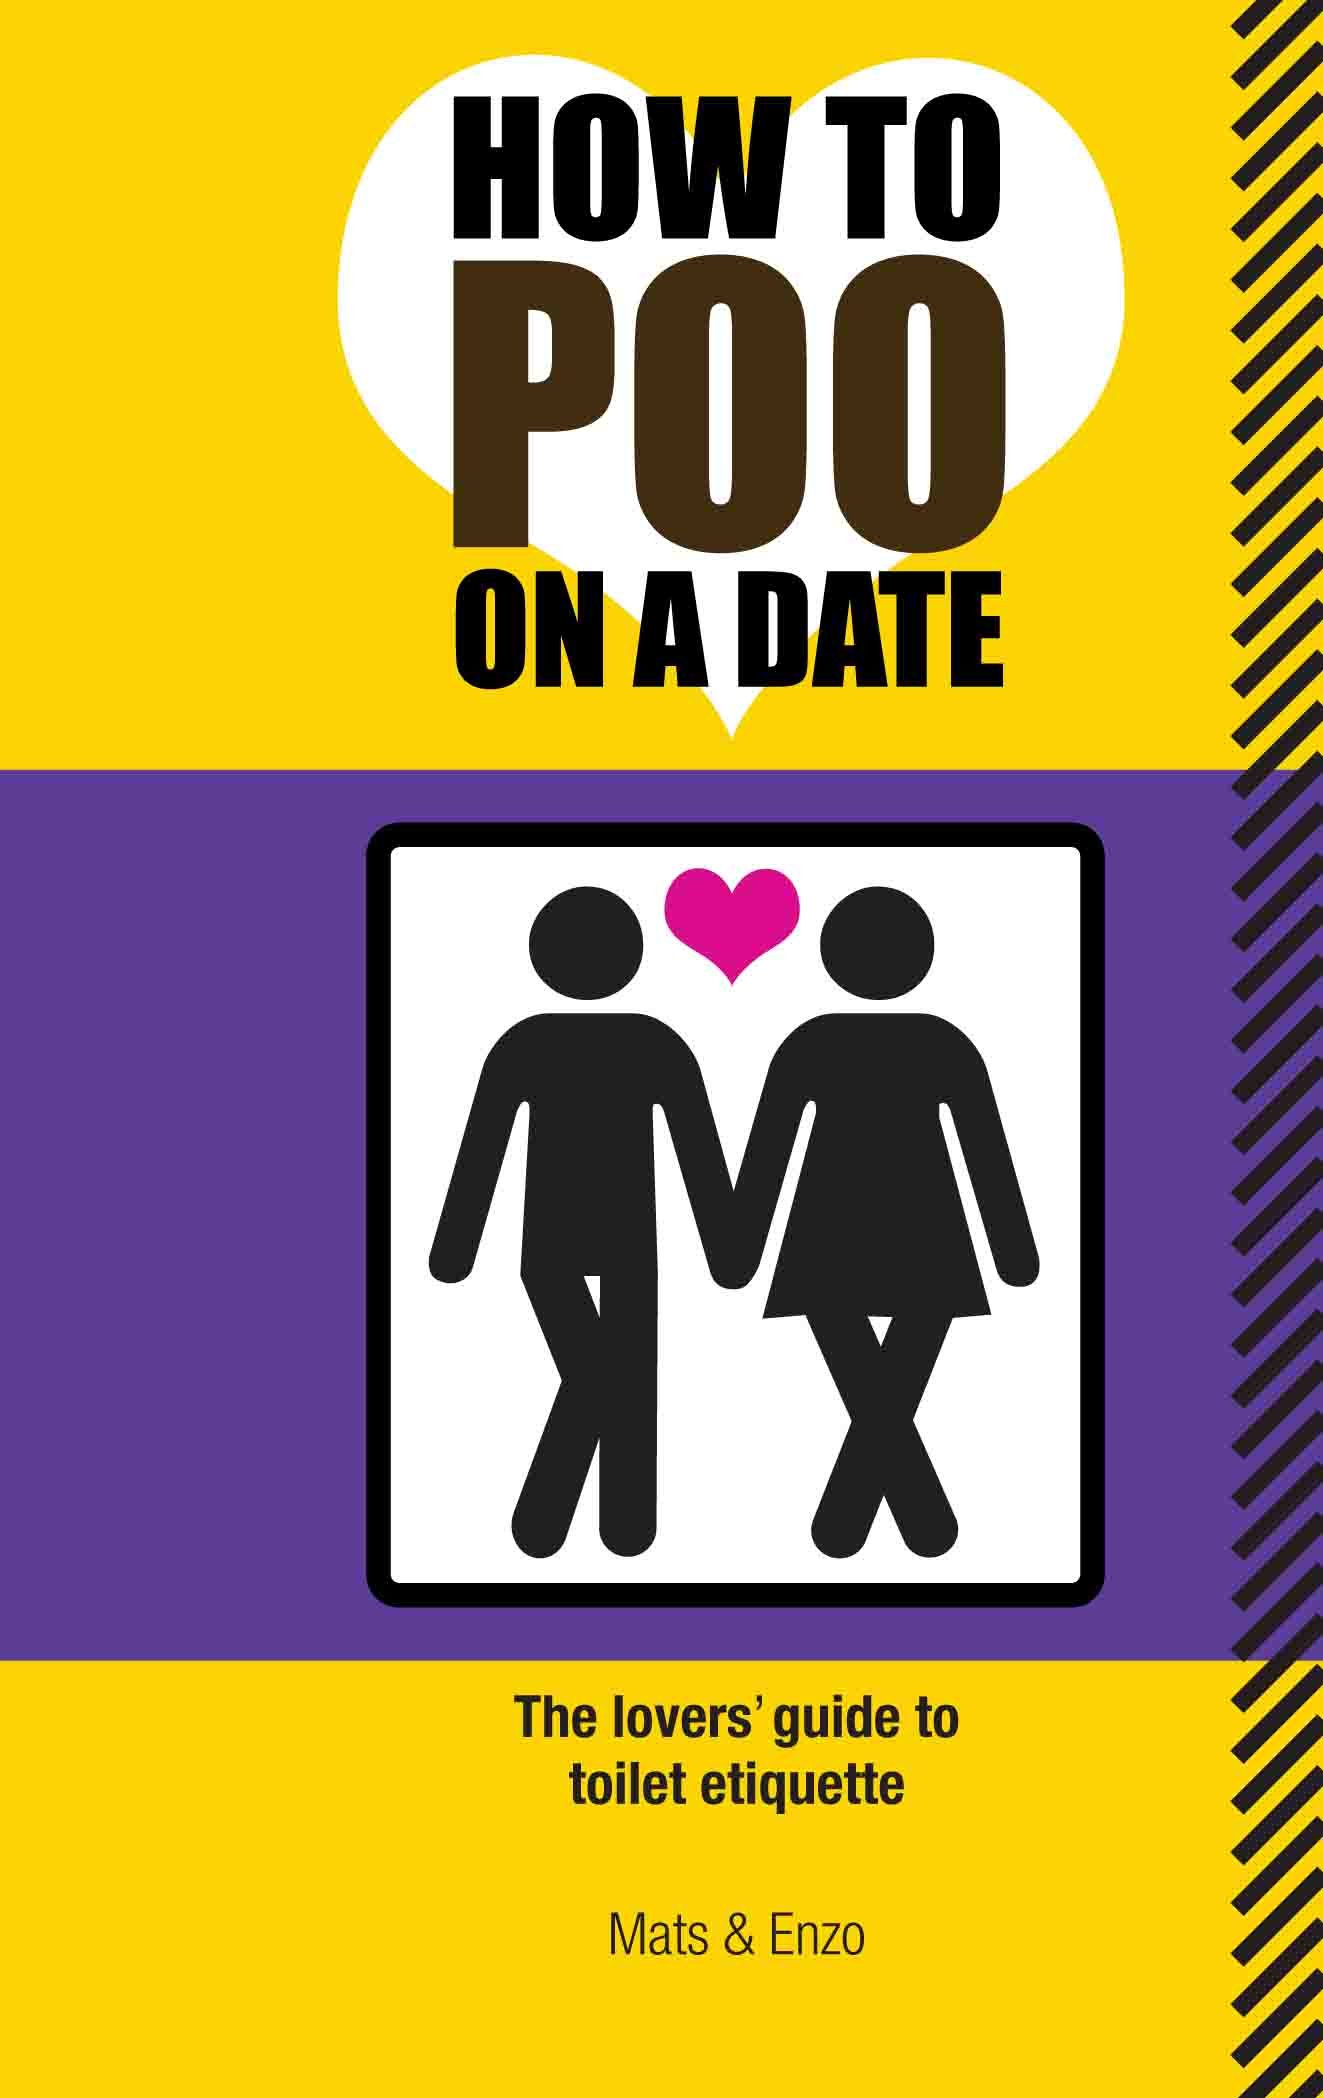 'How to Poo on a Date' by Mats & Enzo